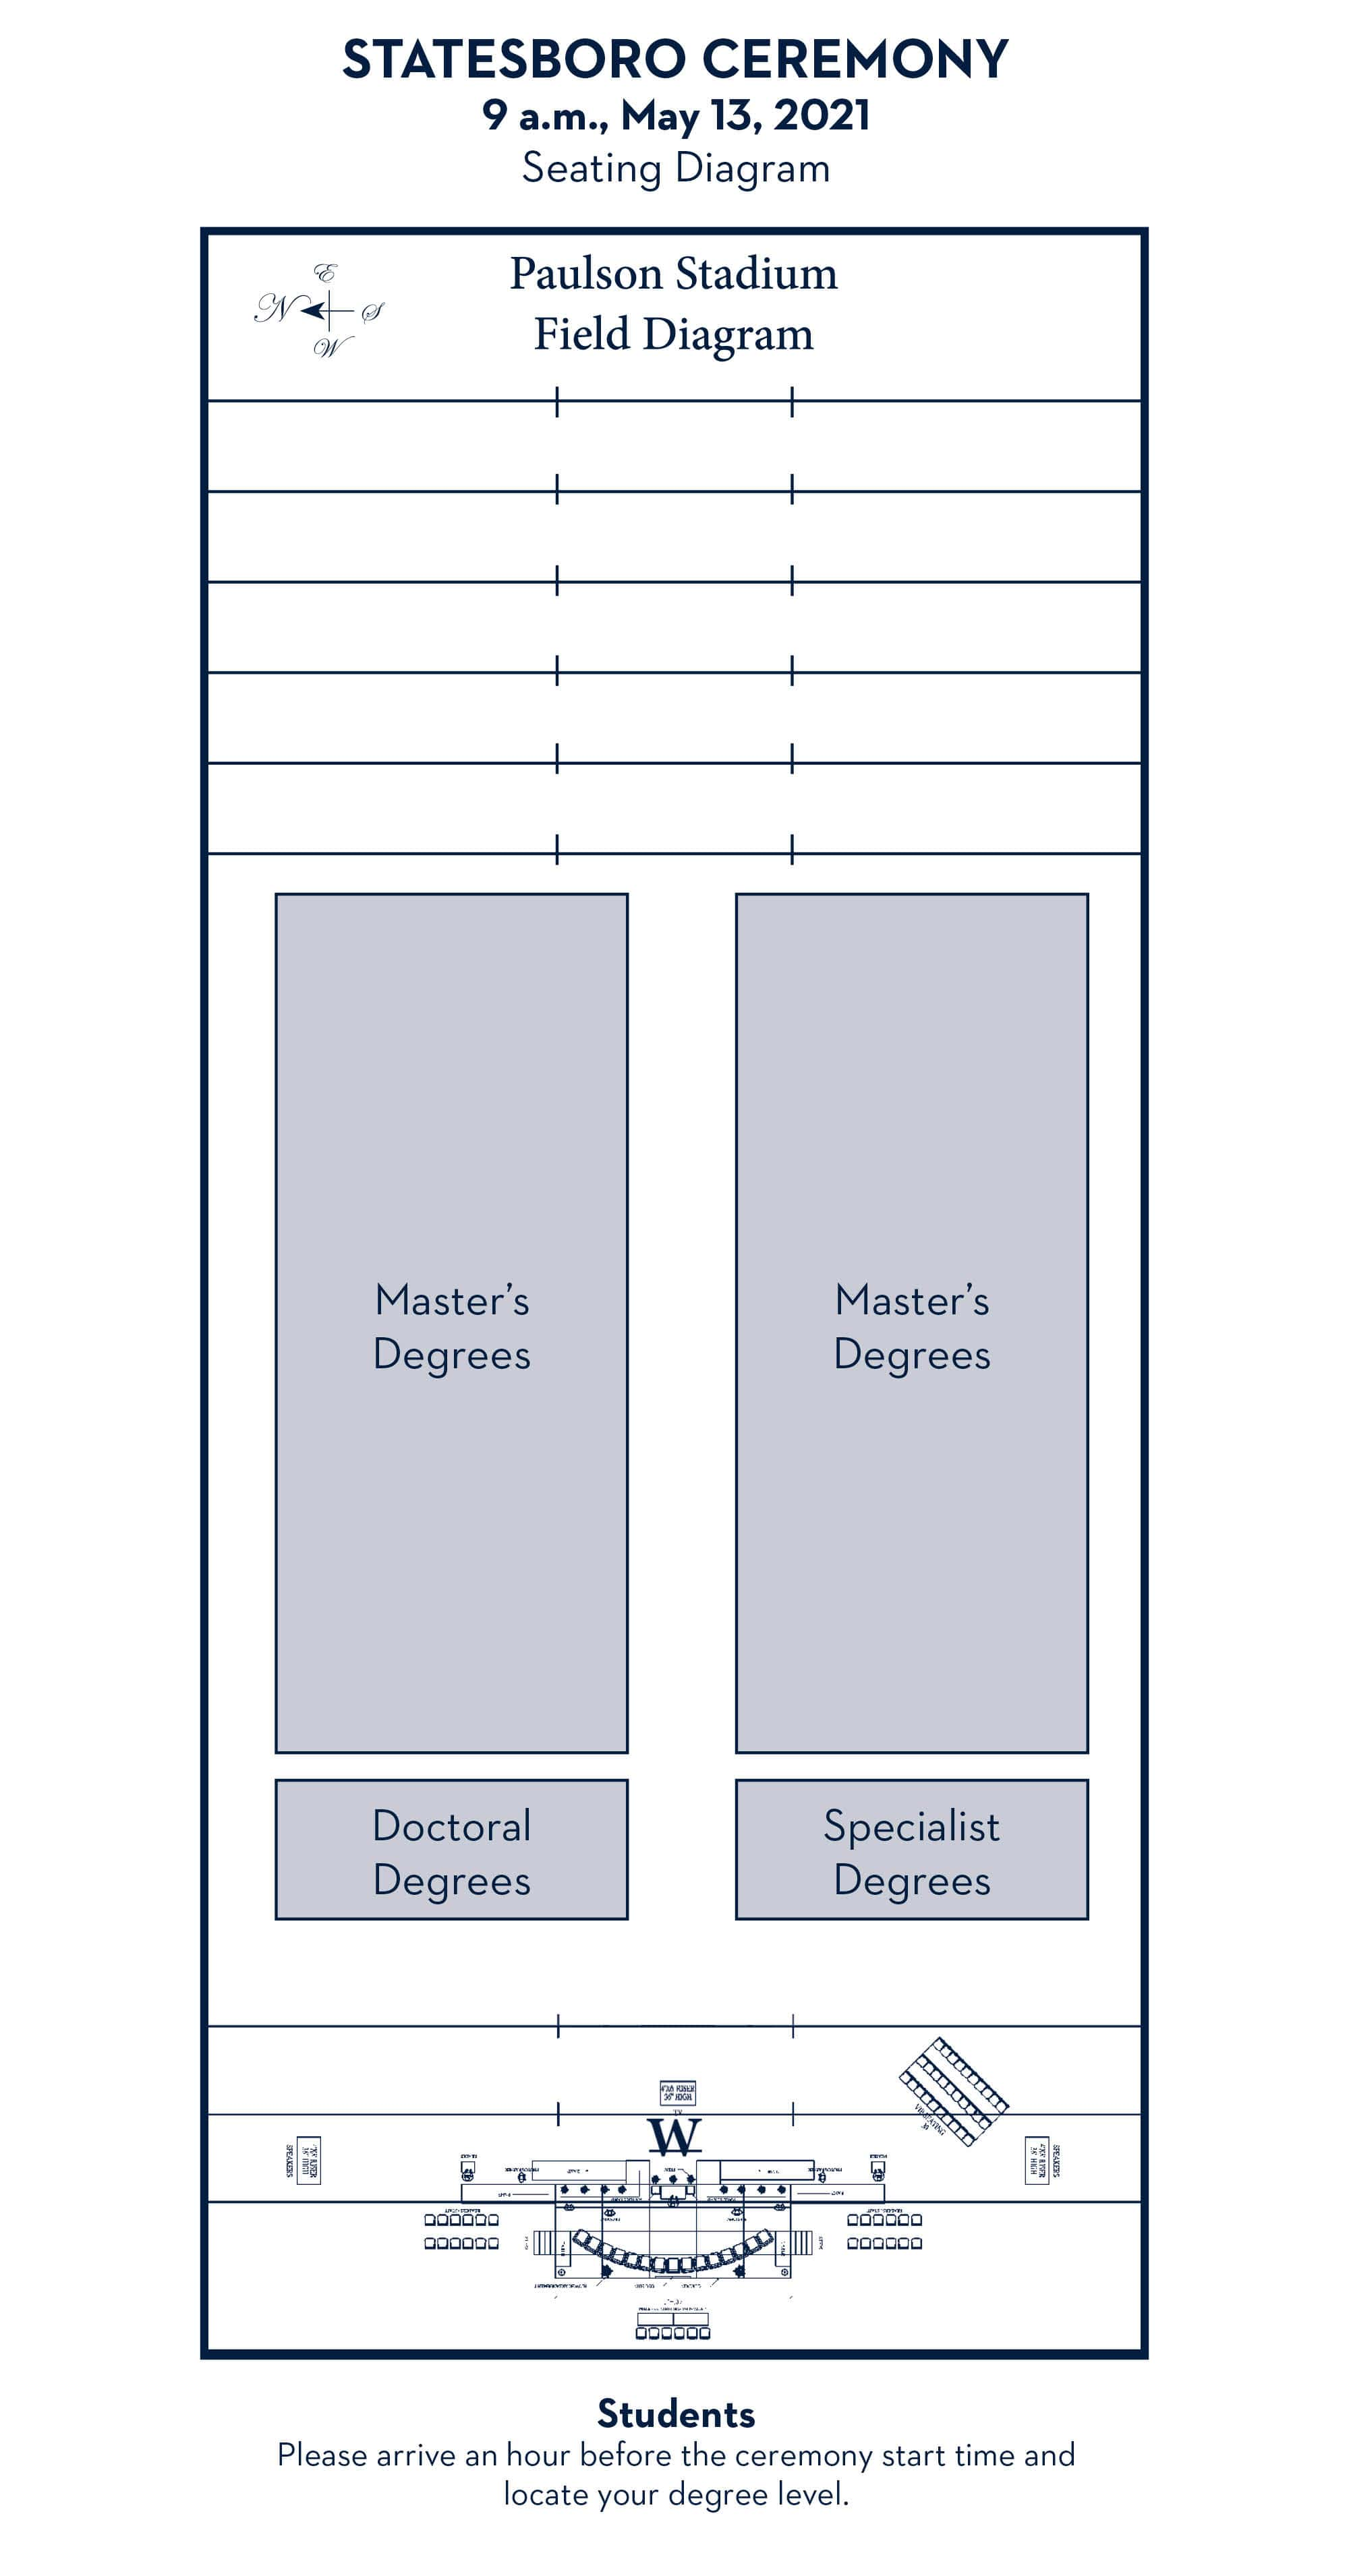 paulson stadium field diagram showing Masters Degrees in the back and Specialist degrees in the front